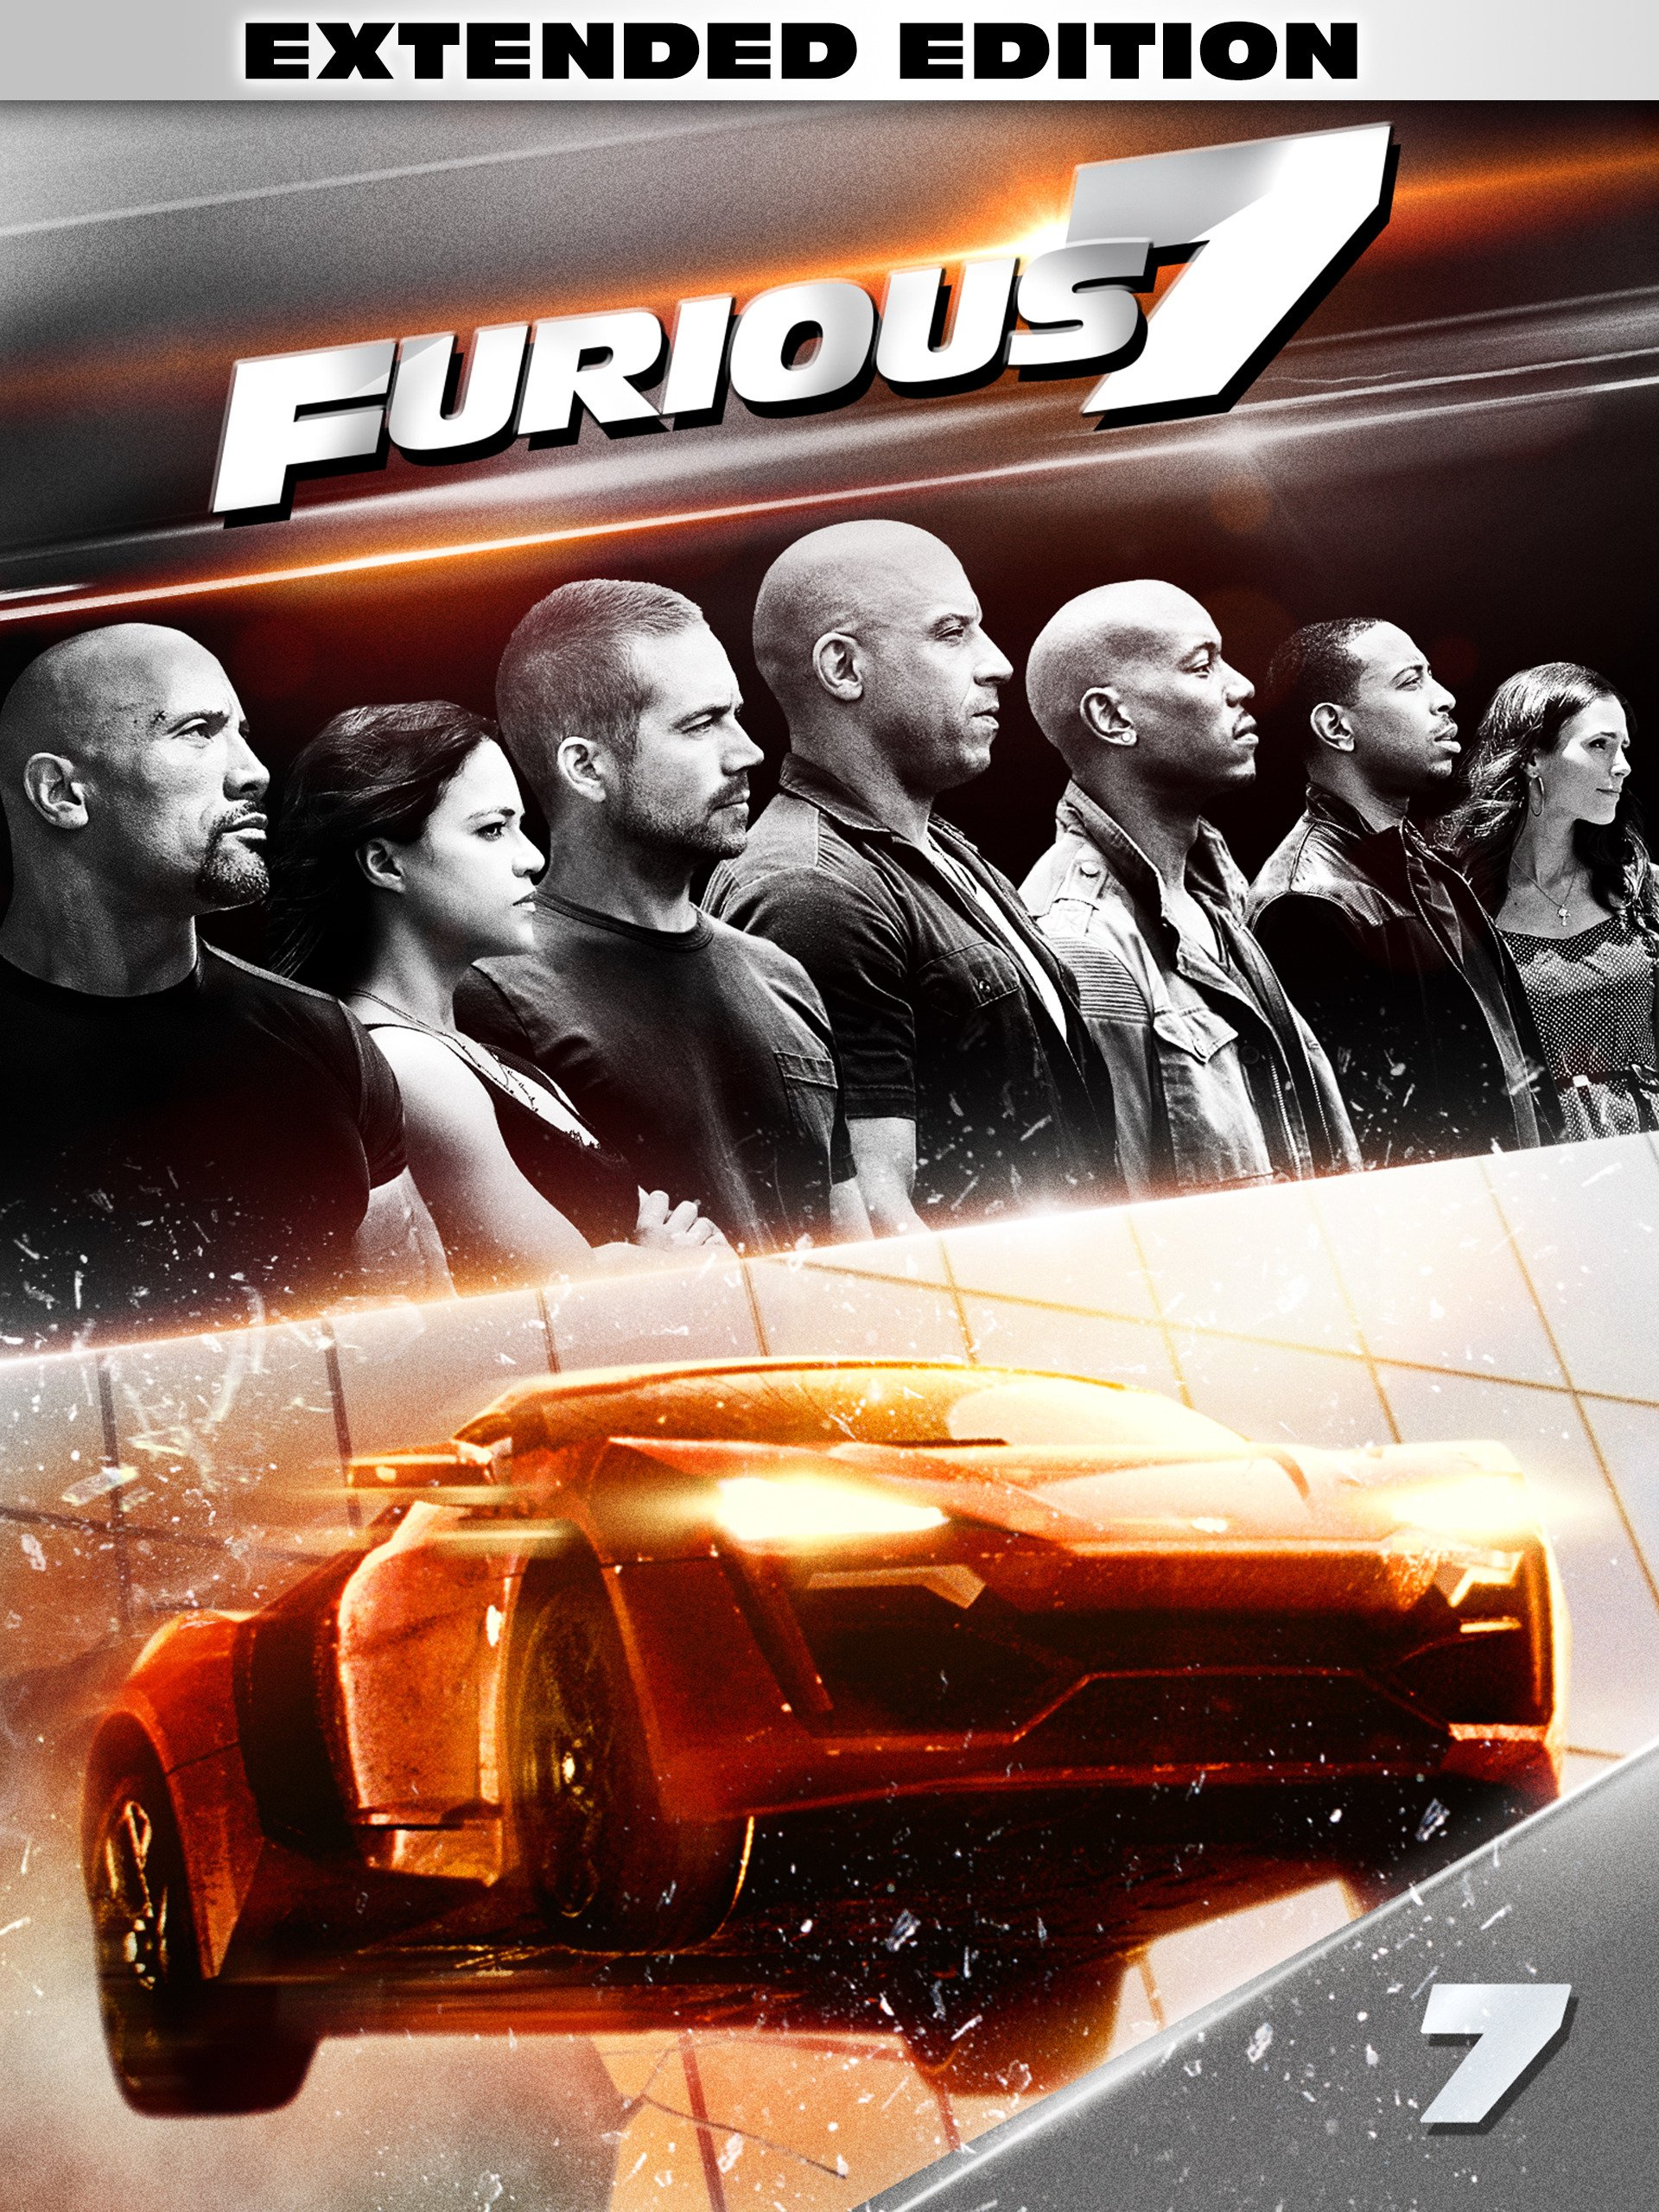 Amazoncom Watch Furious 7 Extended Edition Prime Video